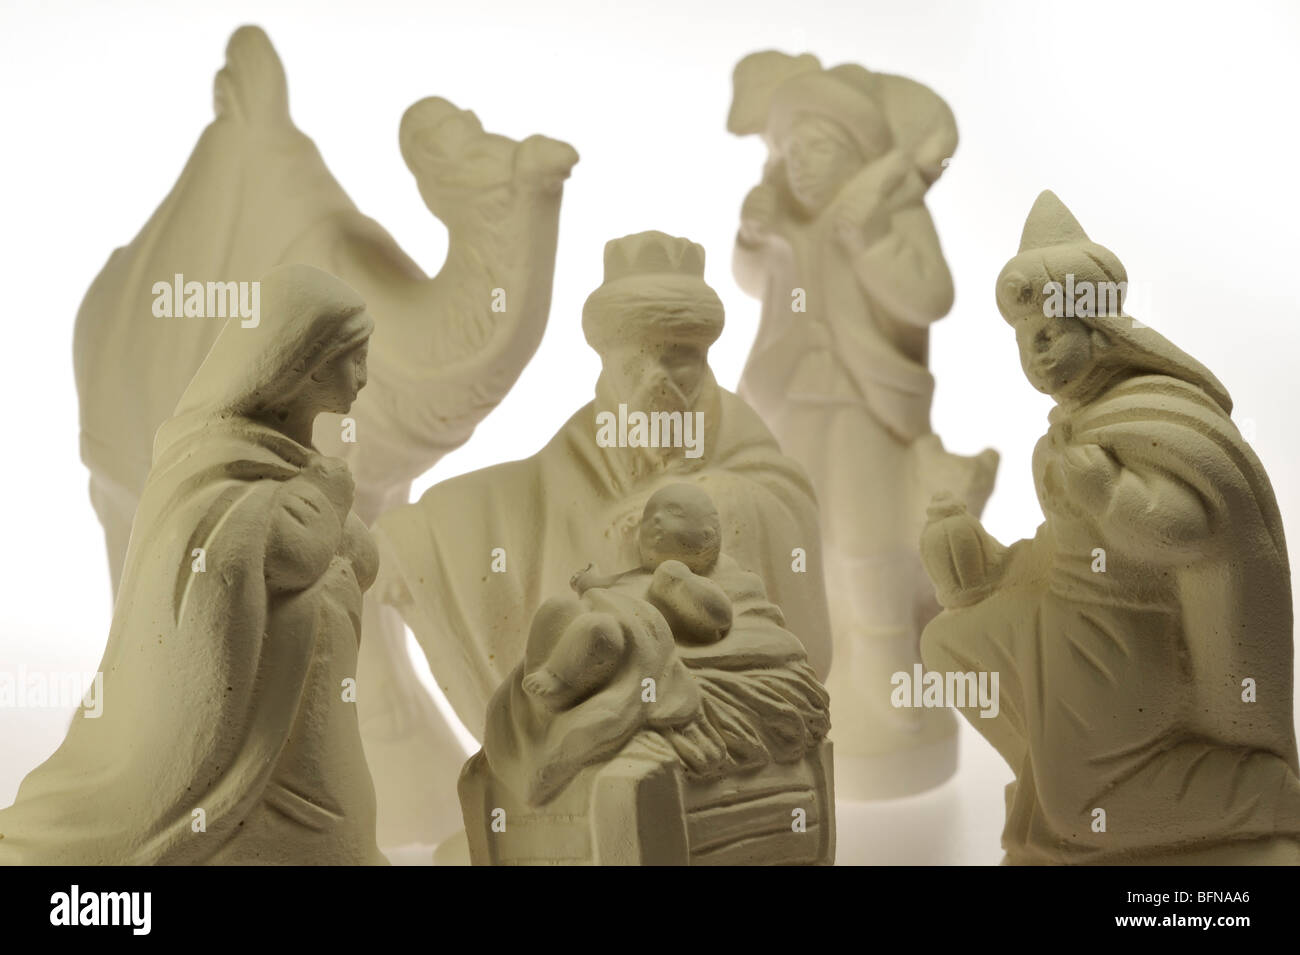 Christmas nativity sculptures showing Jesus and the Virgin Mary - Stock Image